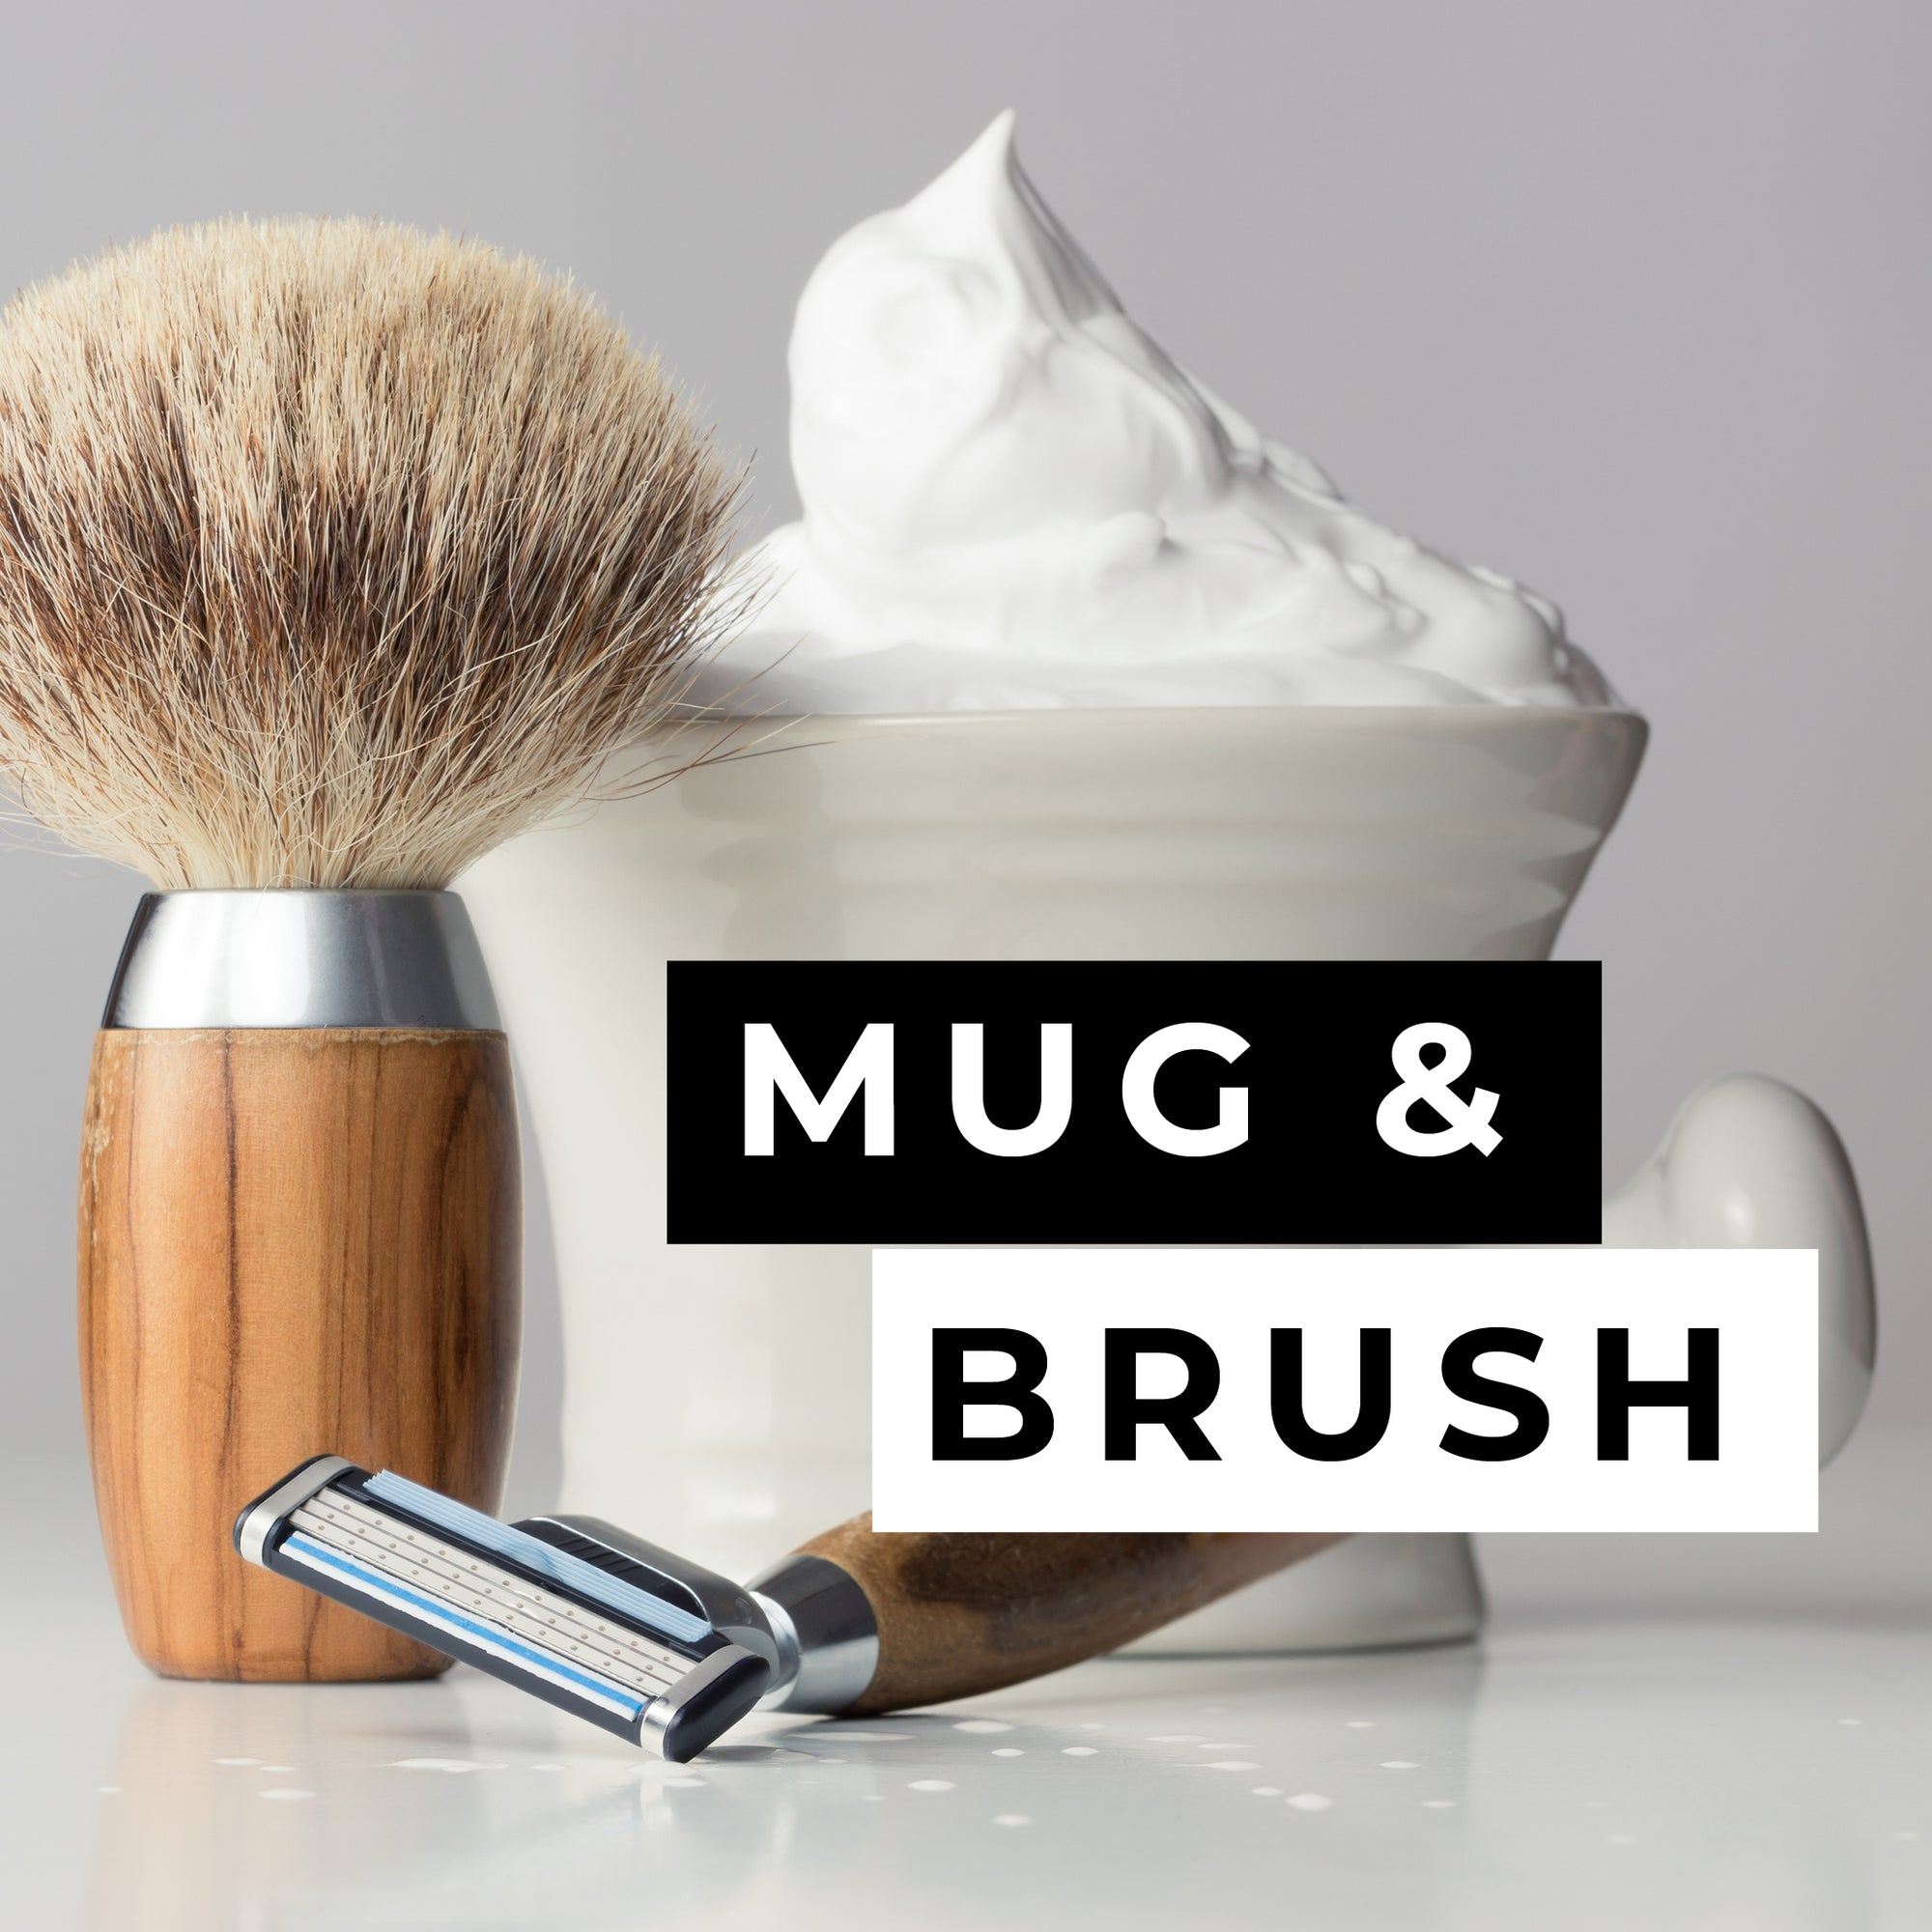 Mug and Brush Candle